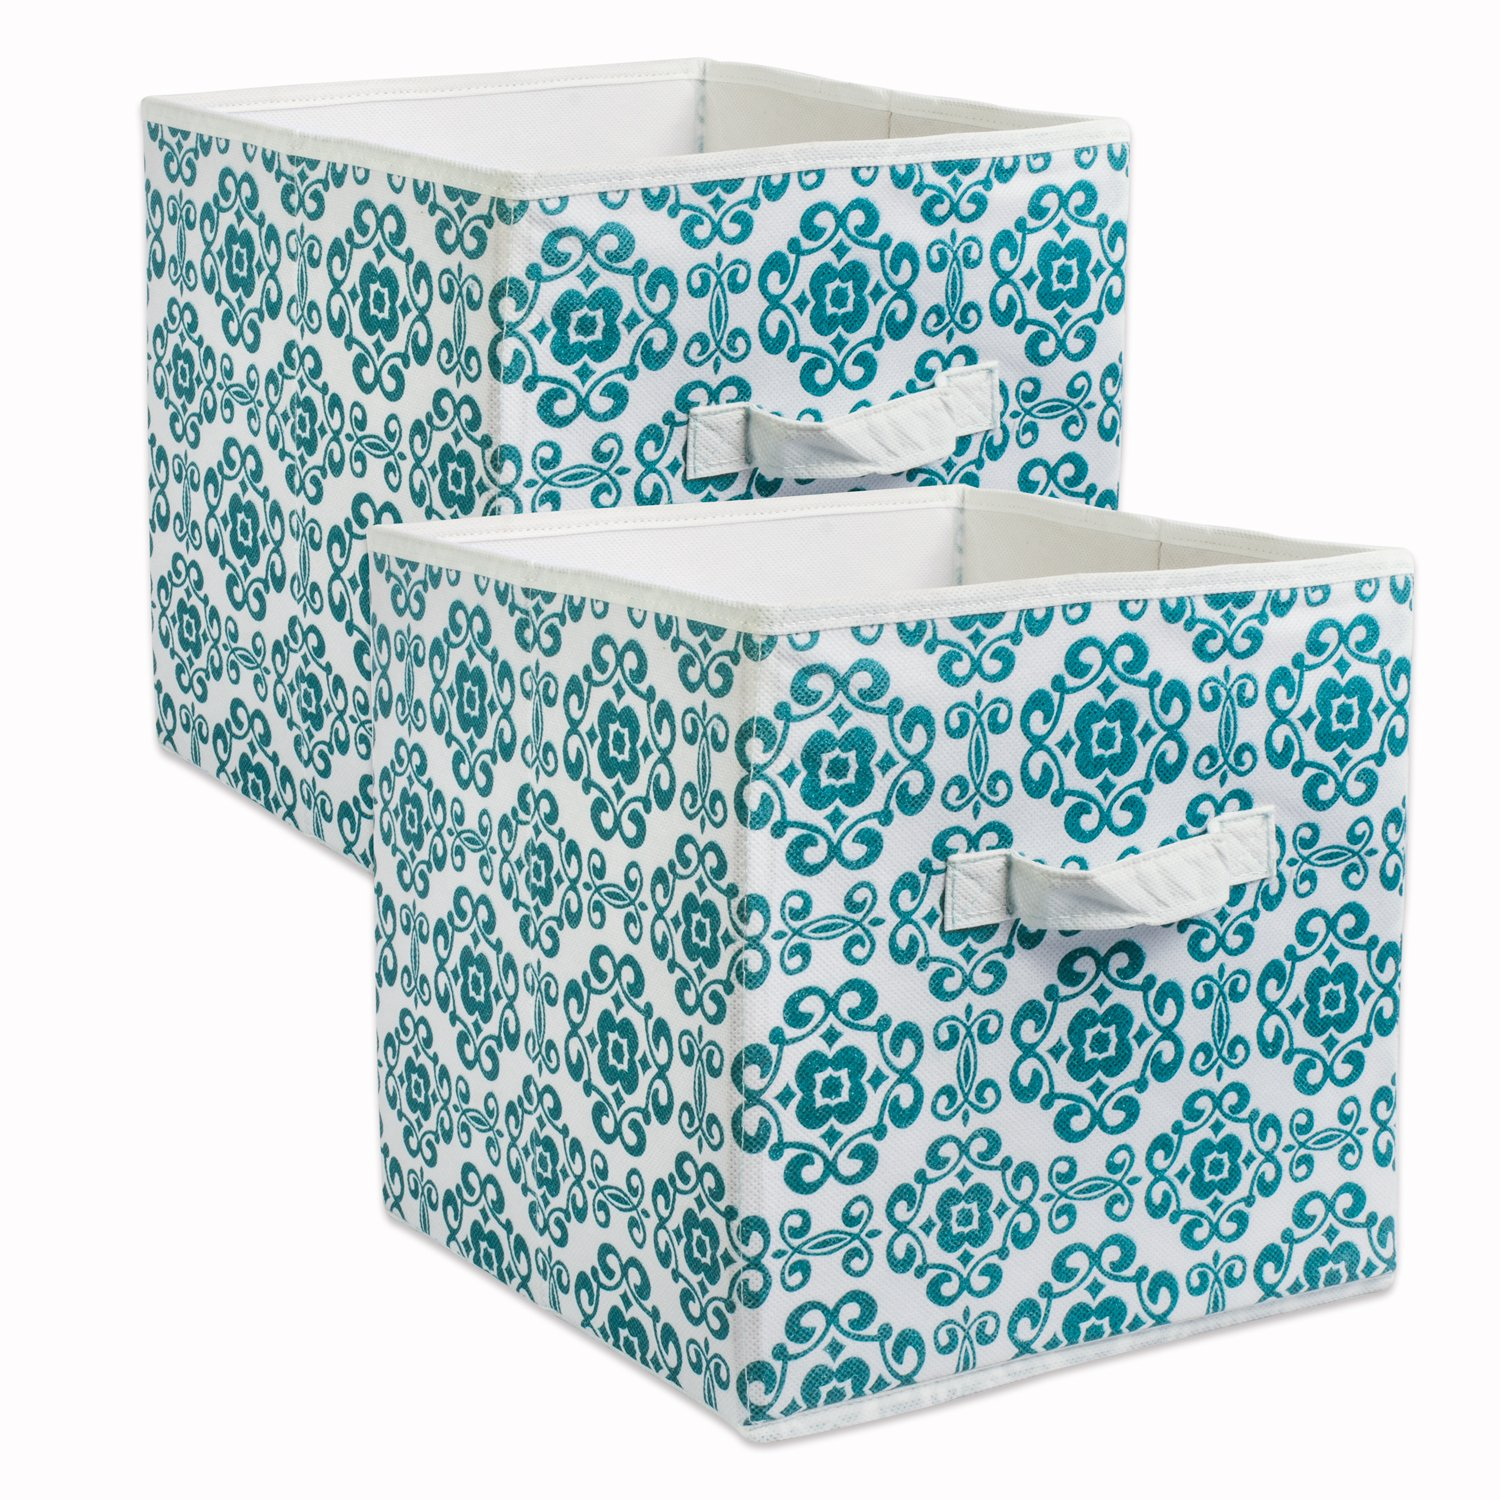 Amazon.com DII Fabric Storage Bins for Nursery Offices Home Organization Containers Are Made To Fit Standard Cube Organizers (11x11x11) Scroll Teal ...  sc 1 st  Amazon.com & Amazon.com: DII Fabric Storage Bins for Nursery Offices Home ...